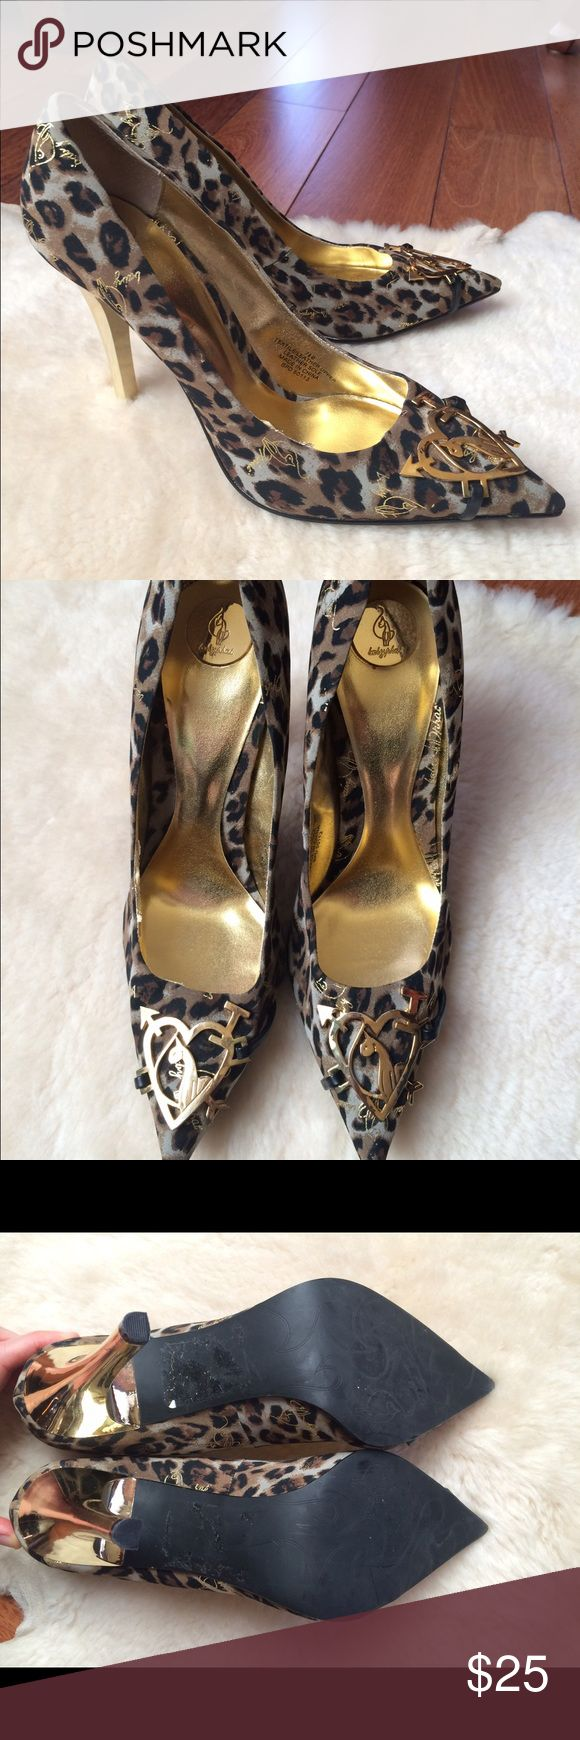 Baby Phat Leopard Gold Metal Heels Size 7.5 Great condition, only worn a handful of times. Gold is plastic, emblems are metal. Size 7.5 Baby Phat Shoes Heels